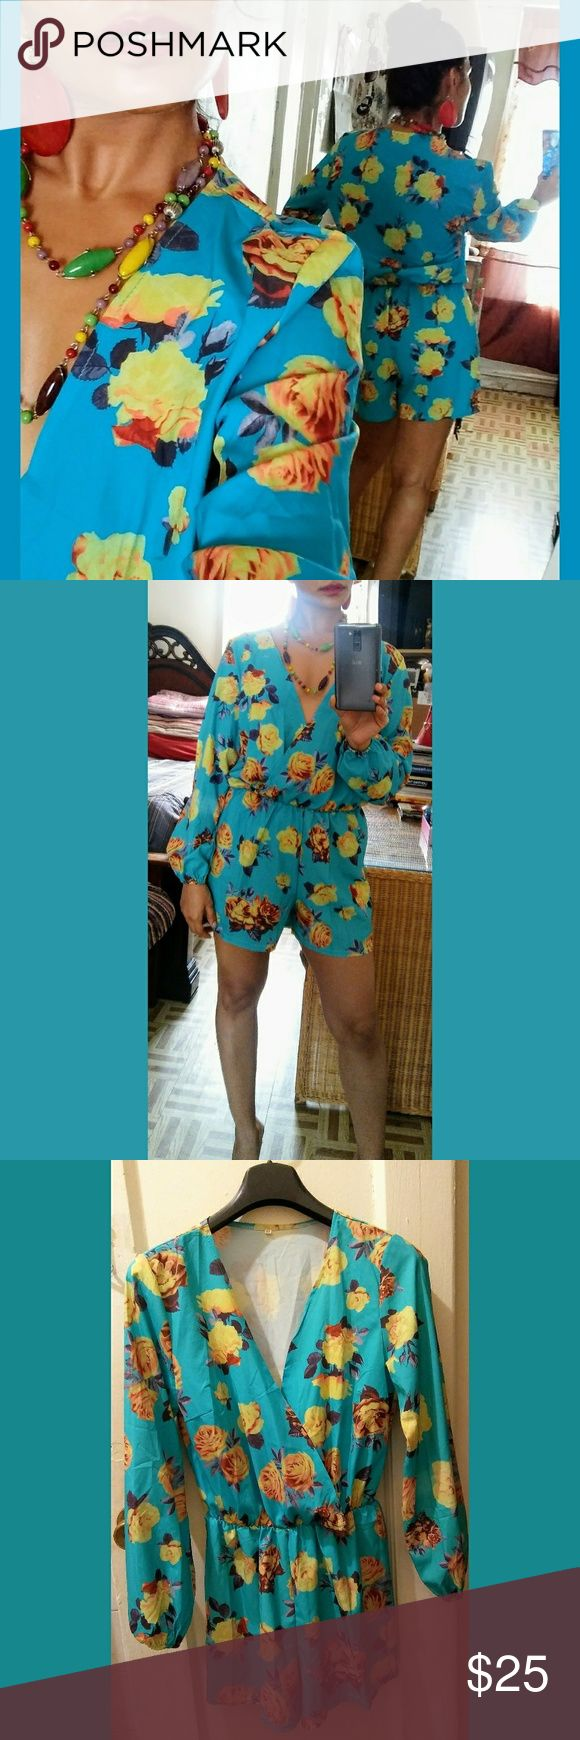 """Flower Power Romper Turquoise with lively, yellow and orange roses. Deep """"V"""" cut adds a seductive touch. Soft, lightweight fabric. Long sleeve- cinched wrist. Elastic waist provides a comfortable """"One Size"""" fit. I am a size 4-6, so you can tell how it fits.  Wanna be noticed?  Paired with fun, colorful accessories, this is definitely a statement outfit! Other"""